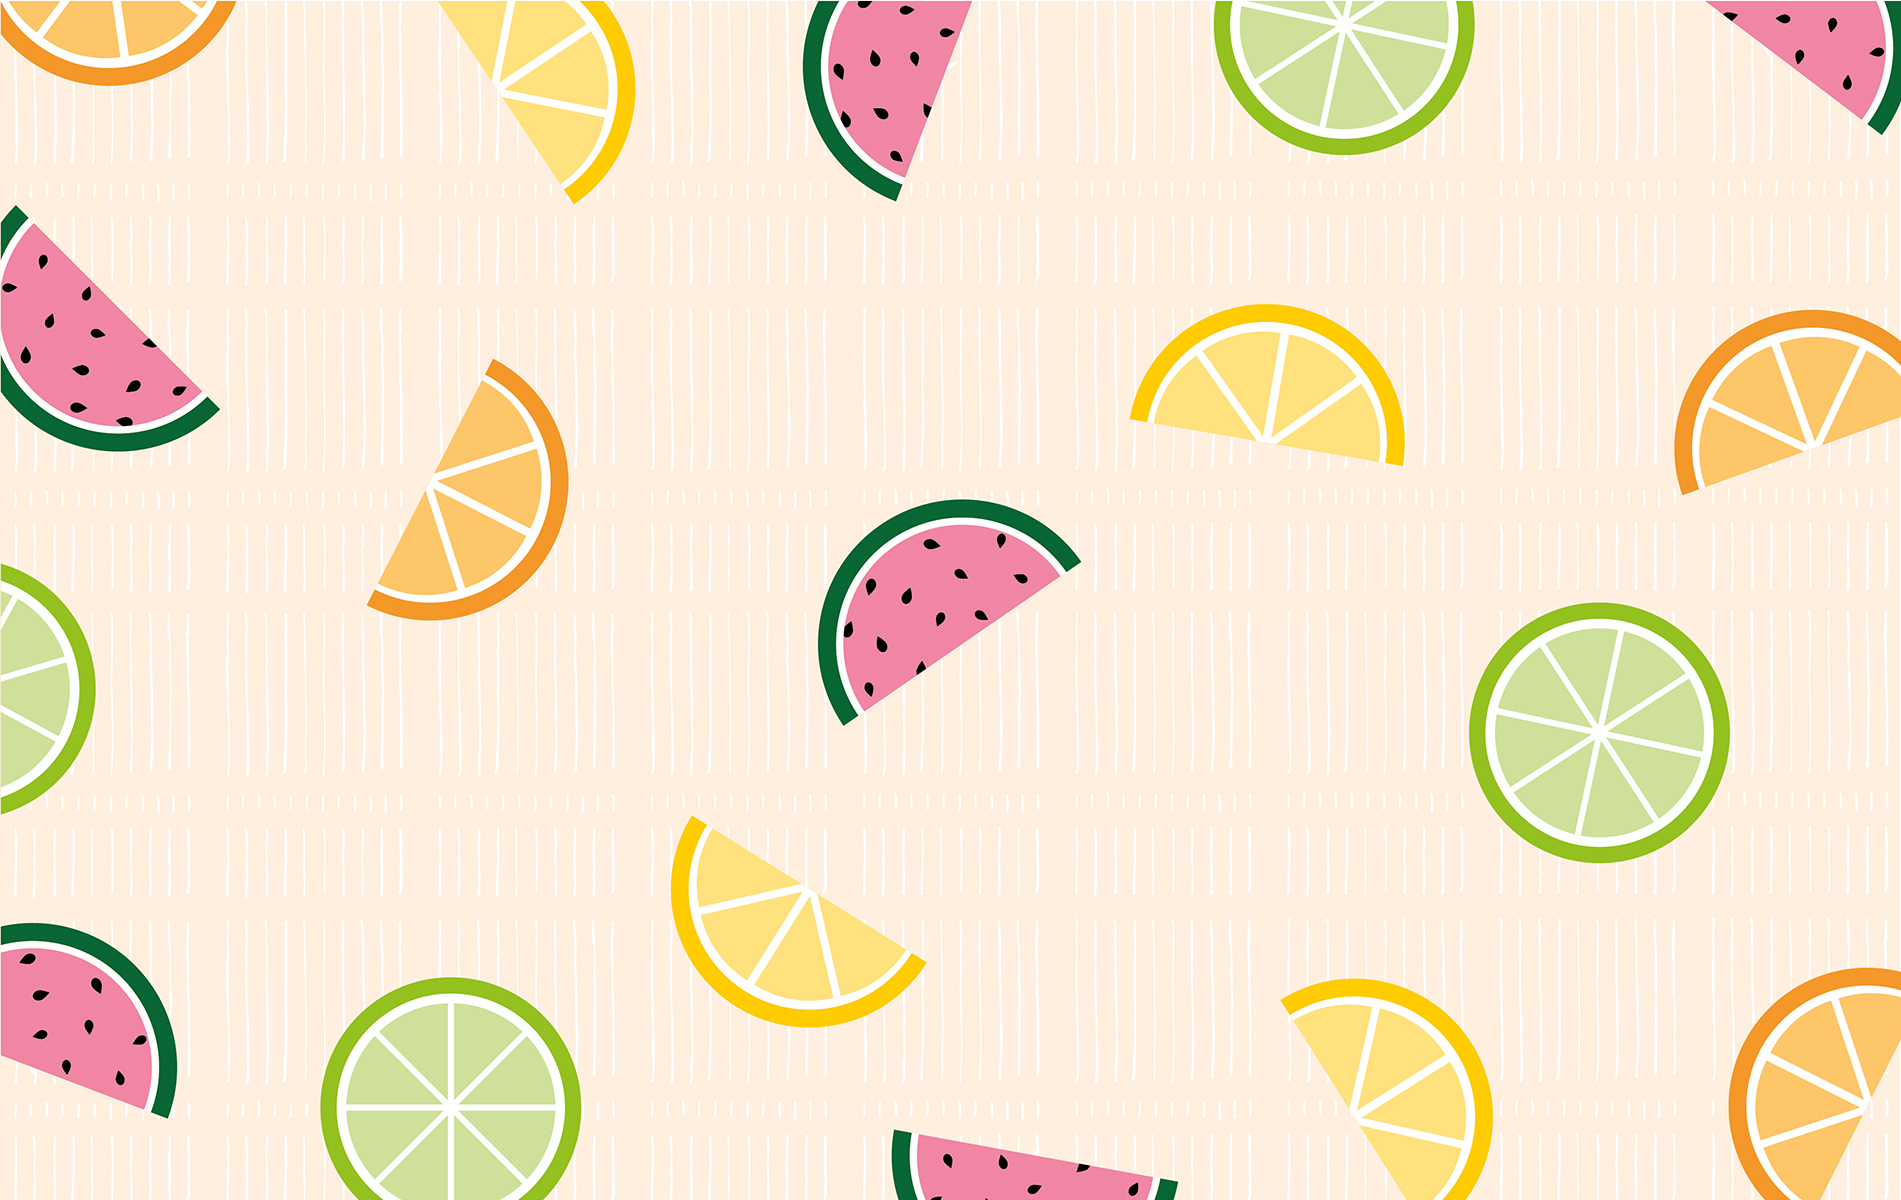 Downloadable 4 Palm Springs Inspired Desktop Wallpapers You Gotta Have This Summer Curbly